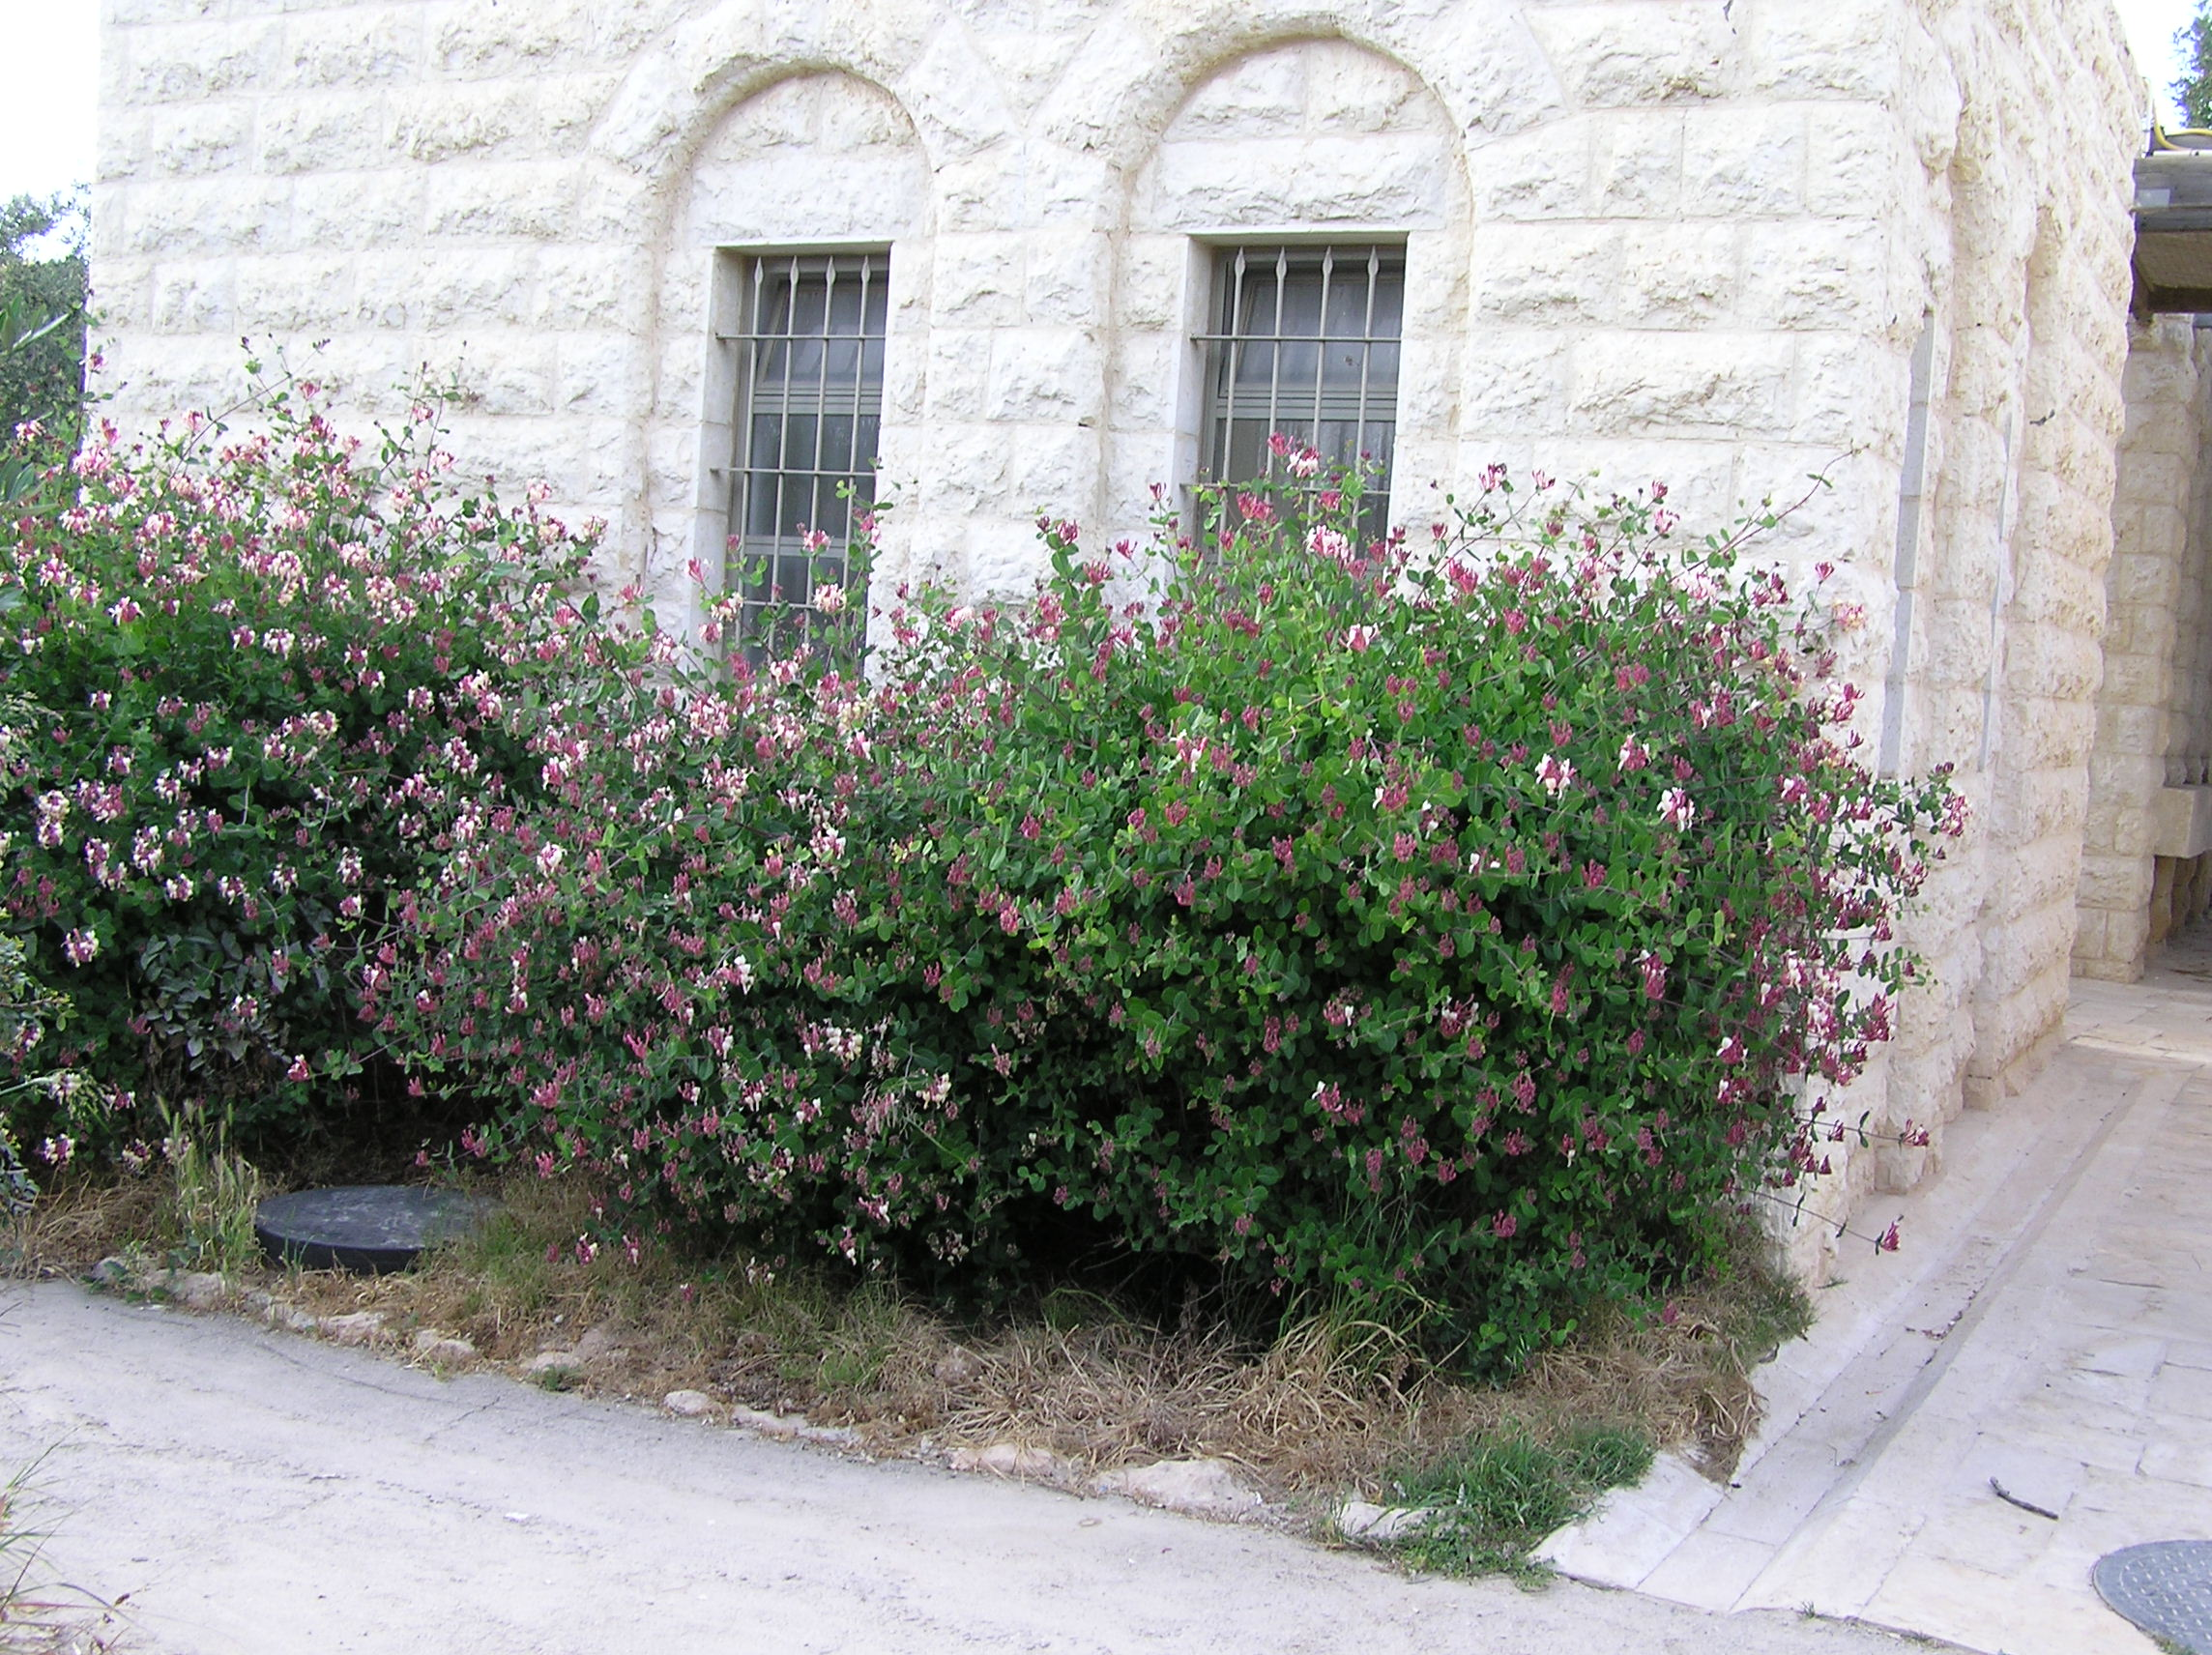 Bayt Jibrin - بيت جبرين : An Israeli looted Palestinian Home With Honeysuckle 'Abhara' In Full Bloom